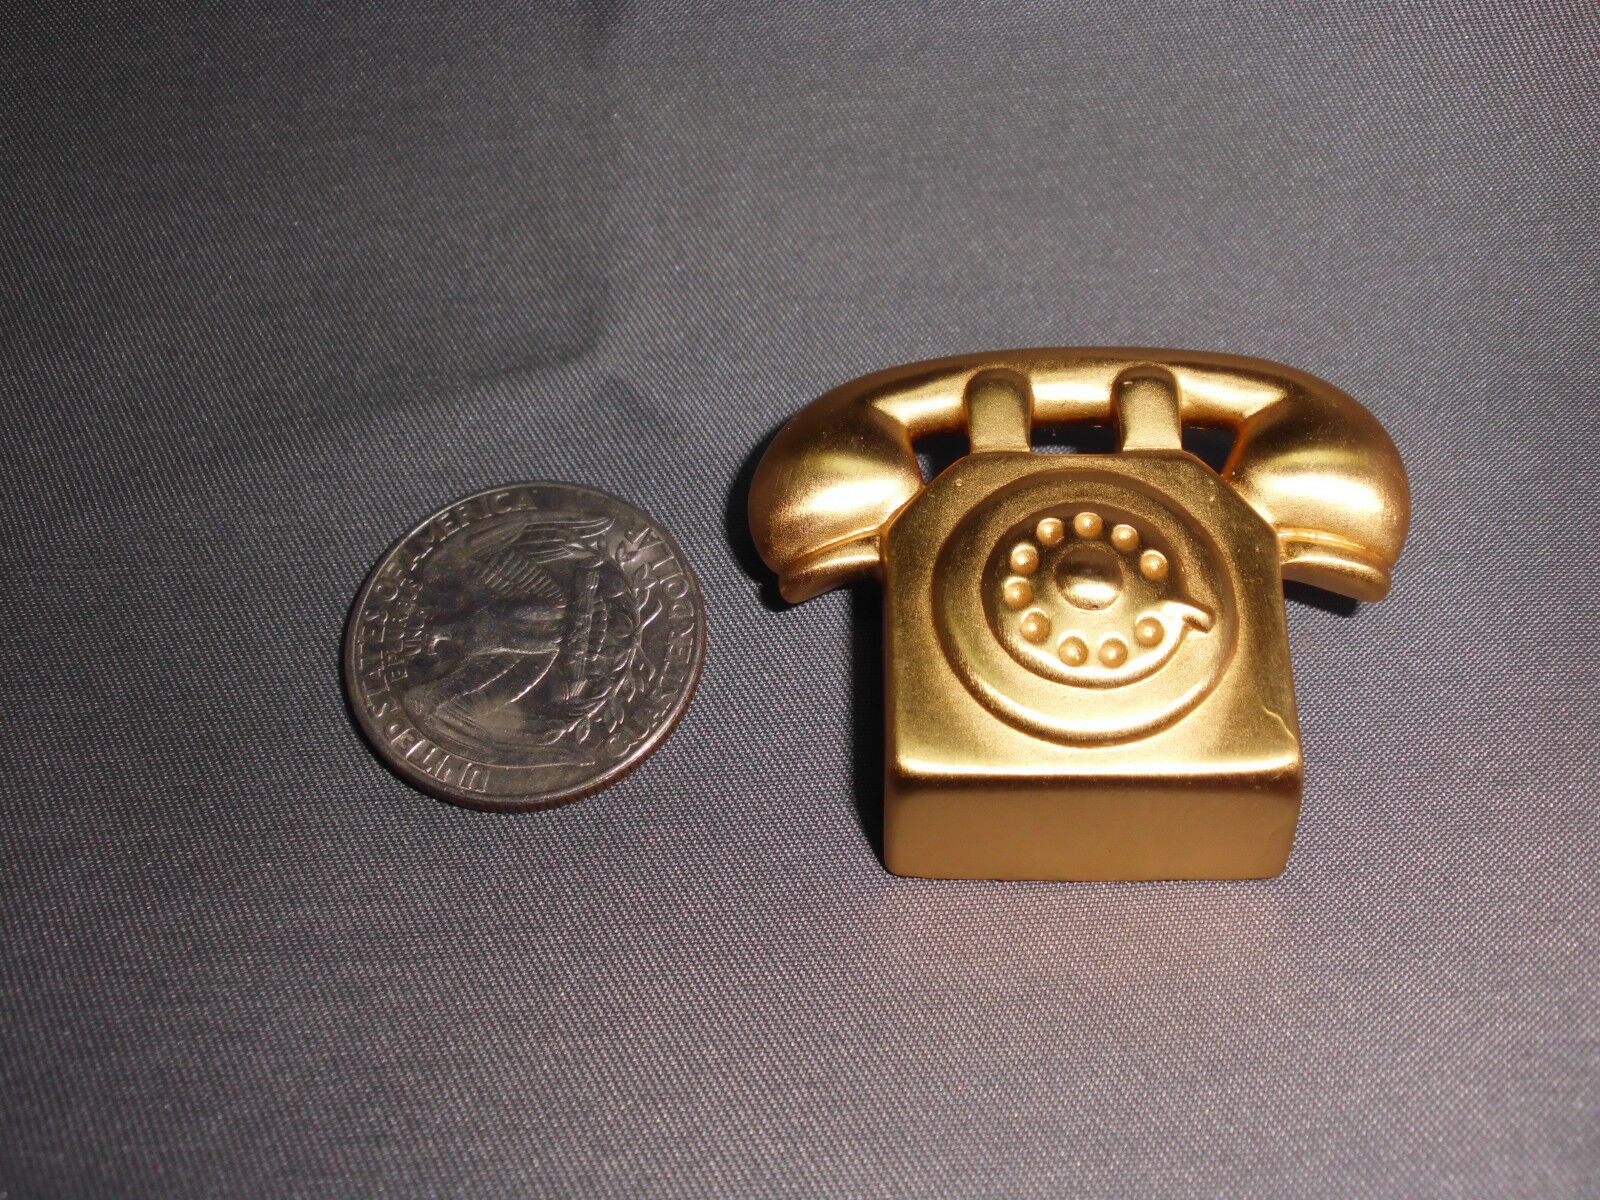 VTG Large Gold Tone Telephone Pin Brooch image 3